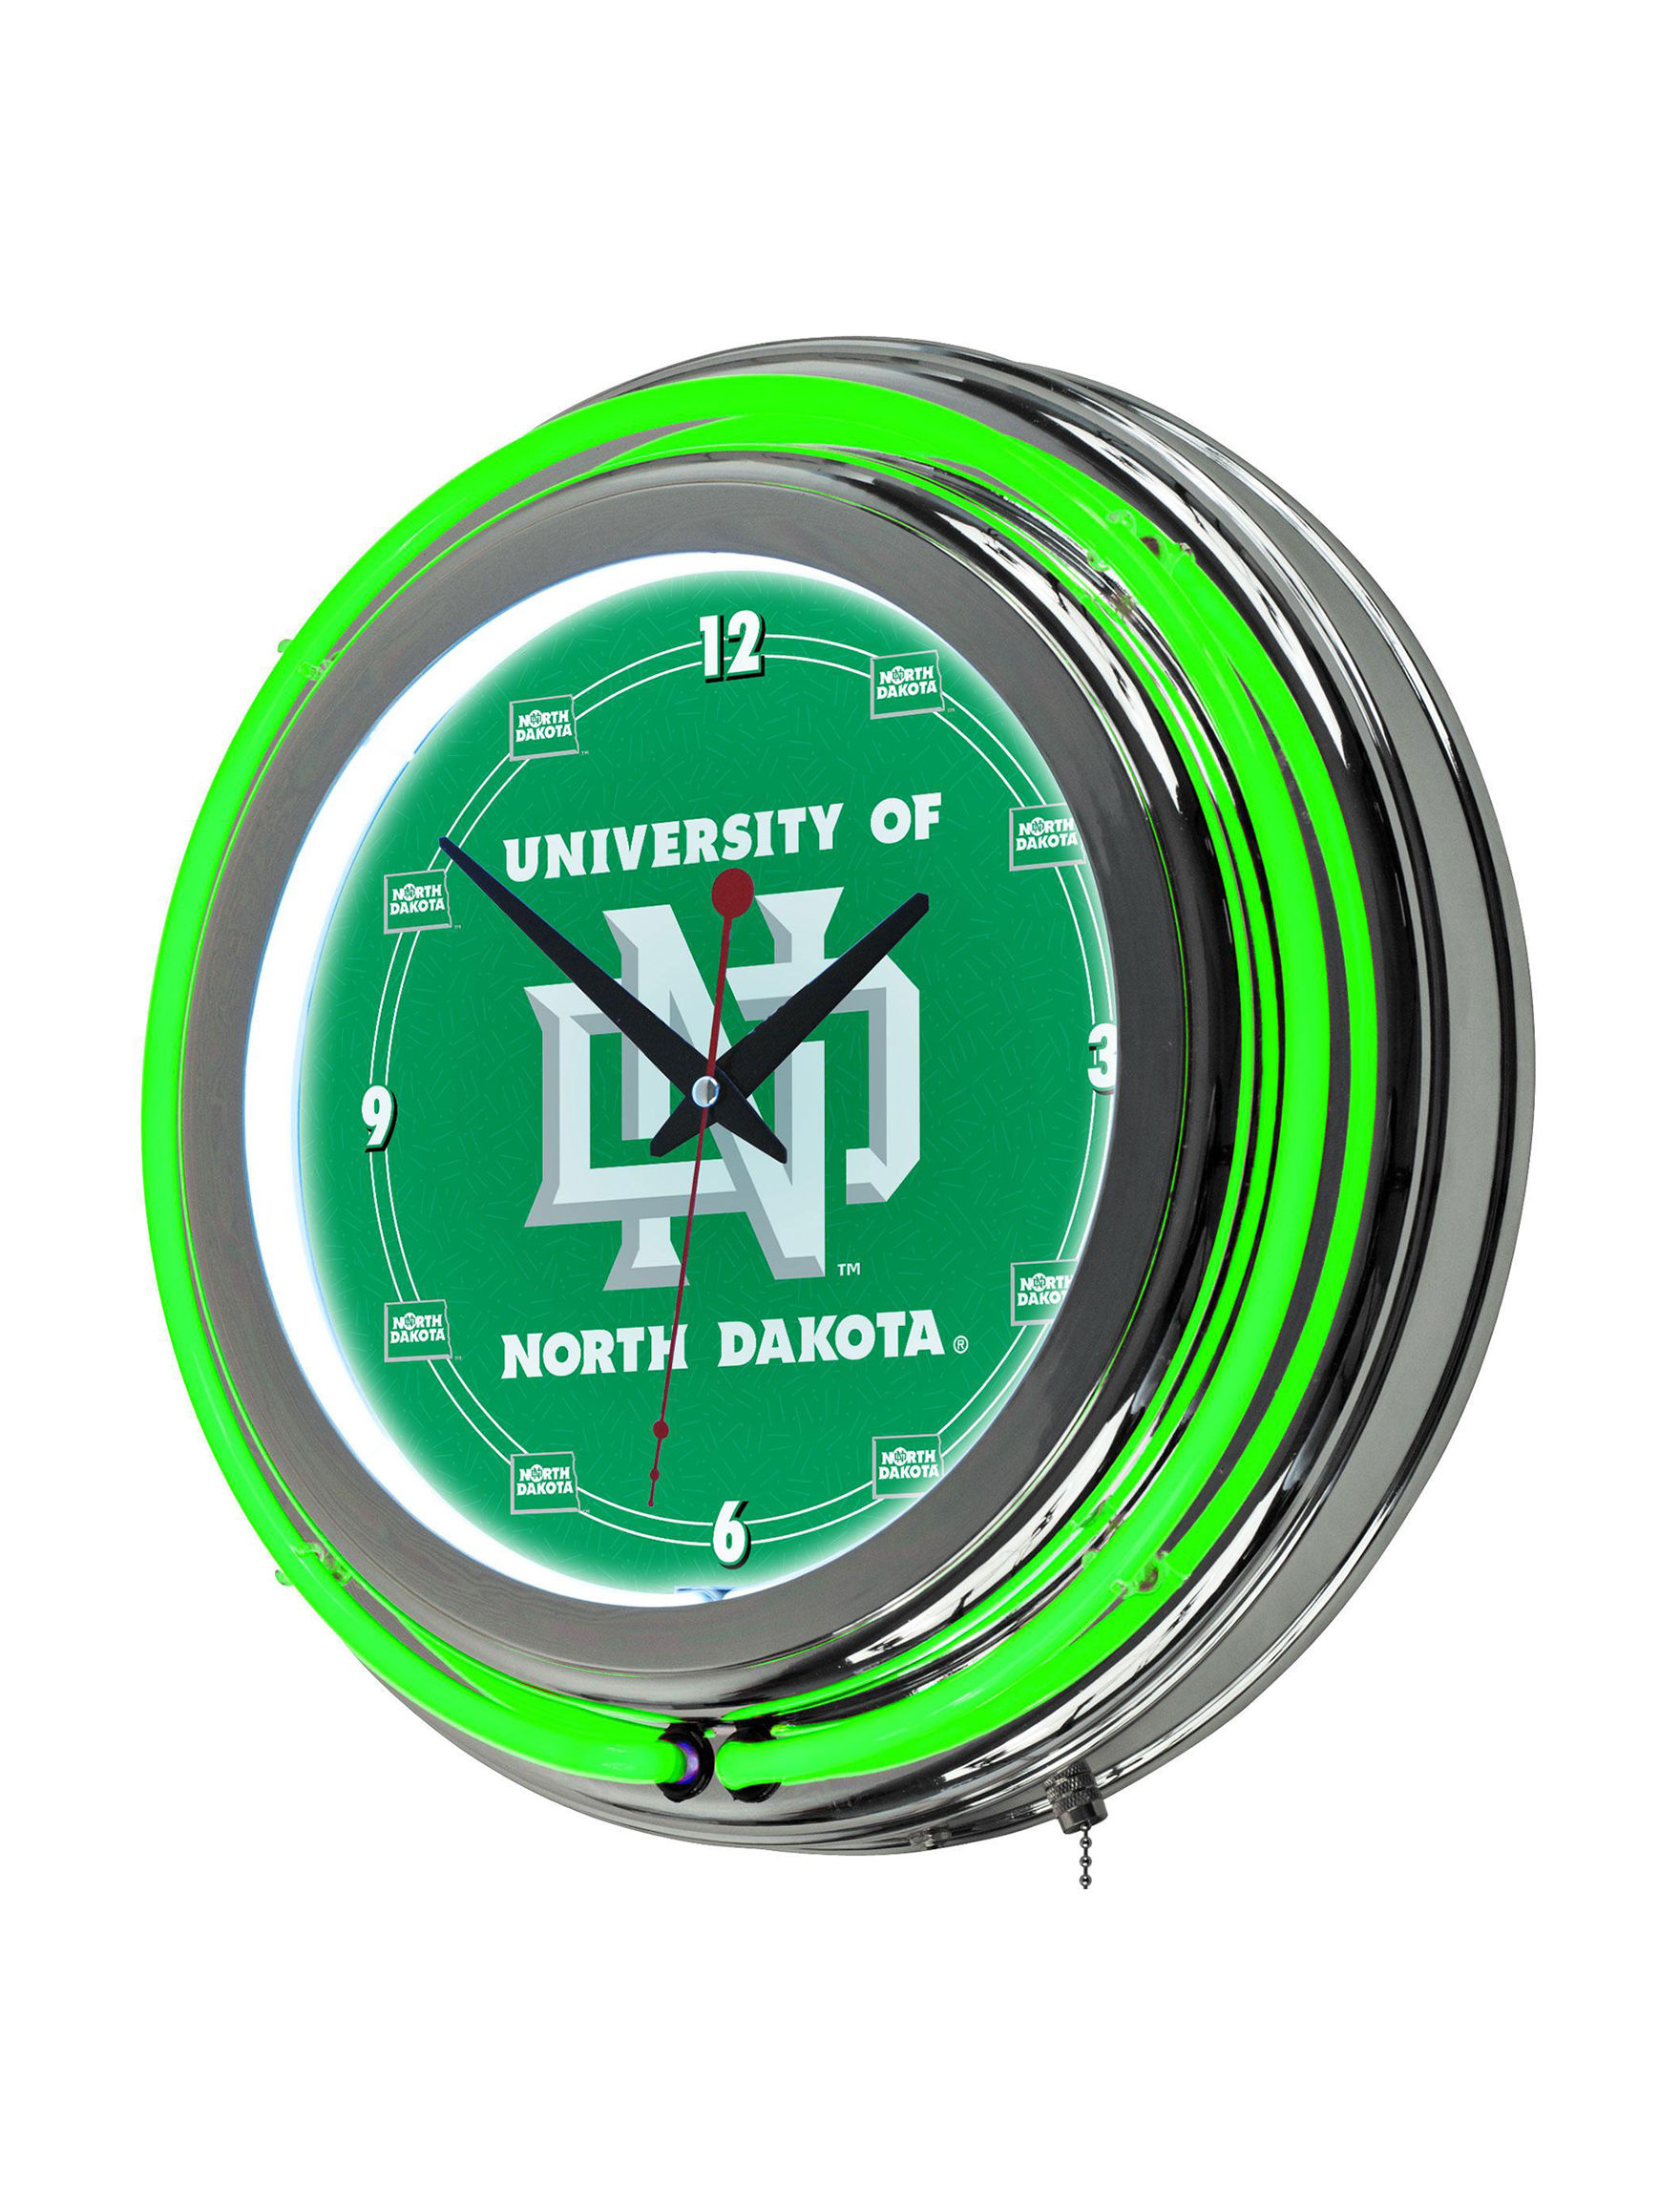 NCAA Green / White Decorative Objects Wall Art Wall Clocks Home Accents NCAA Wall Decor